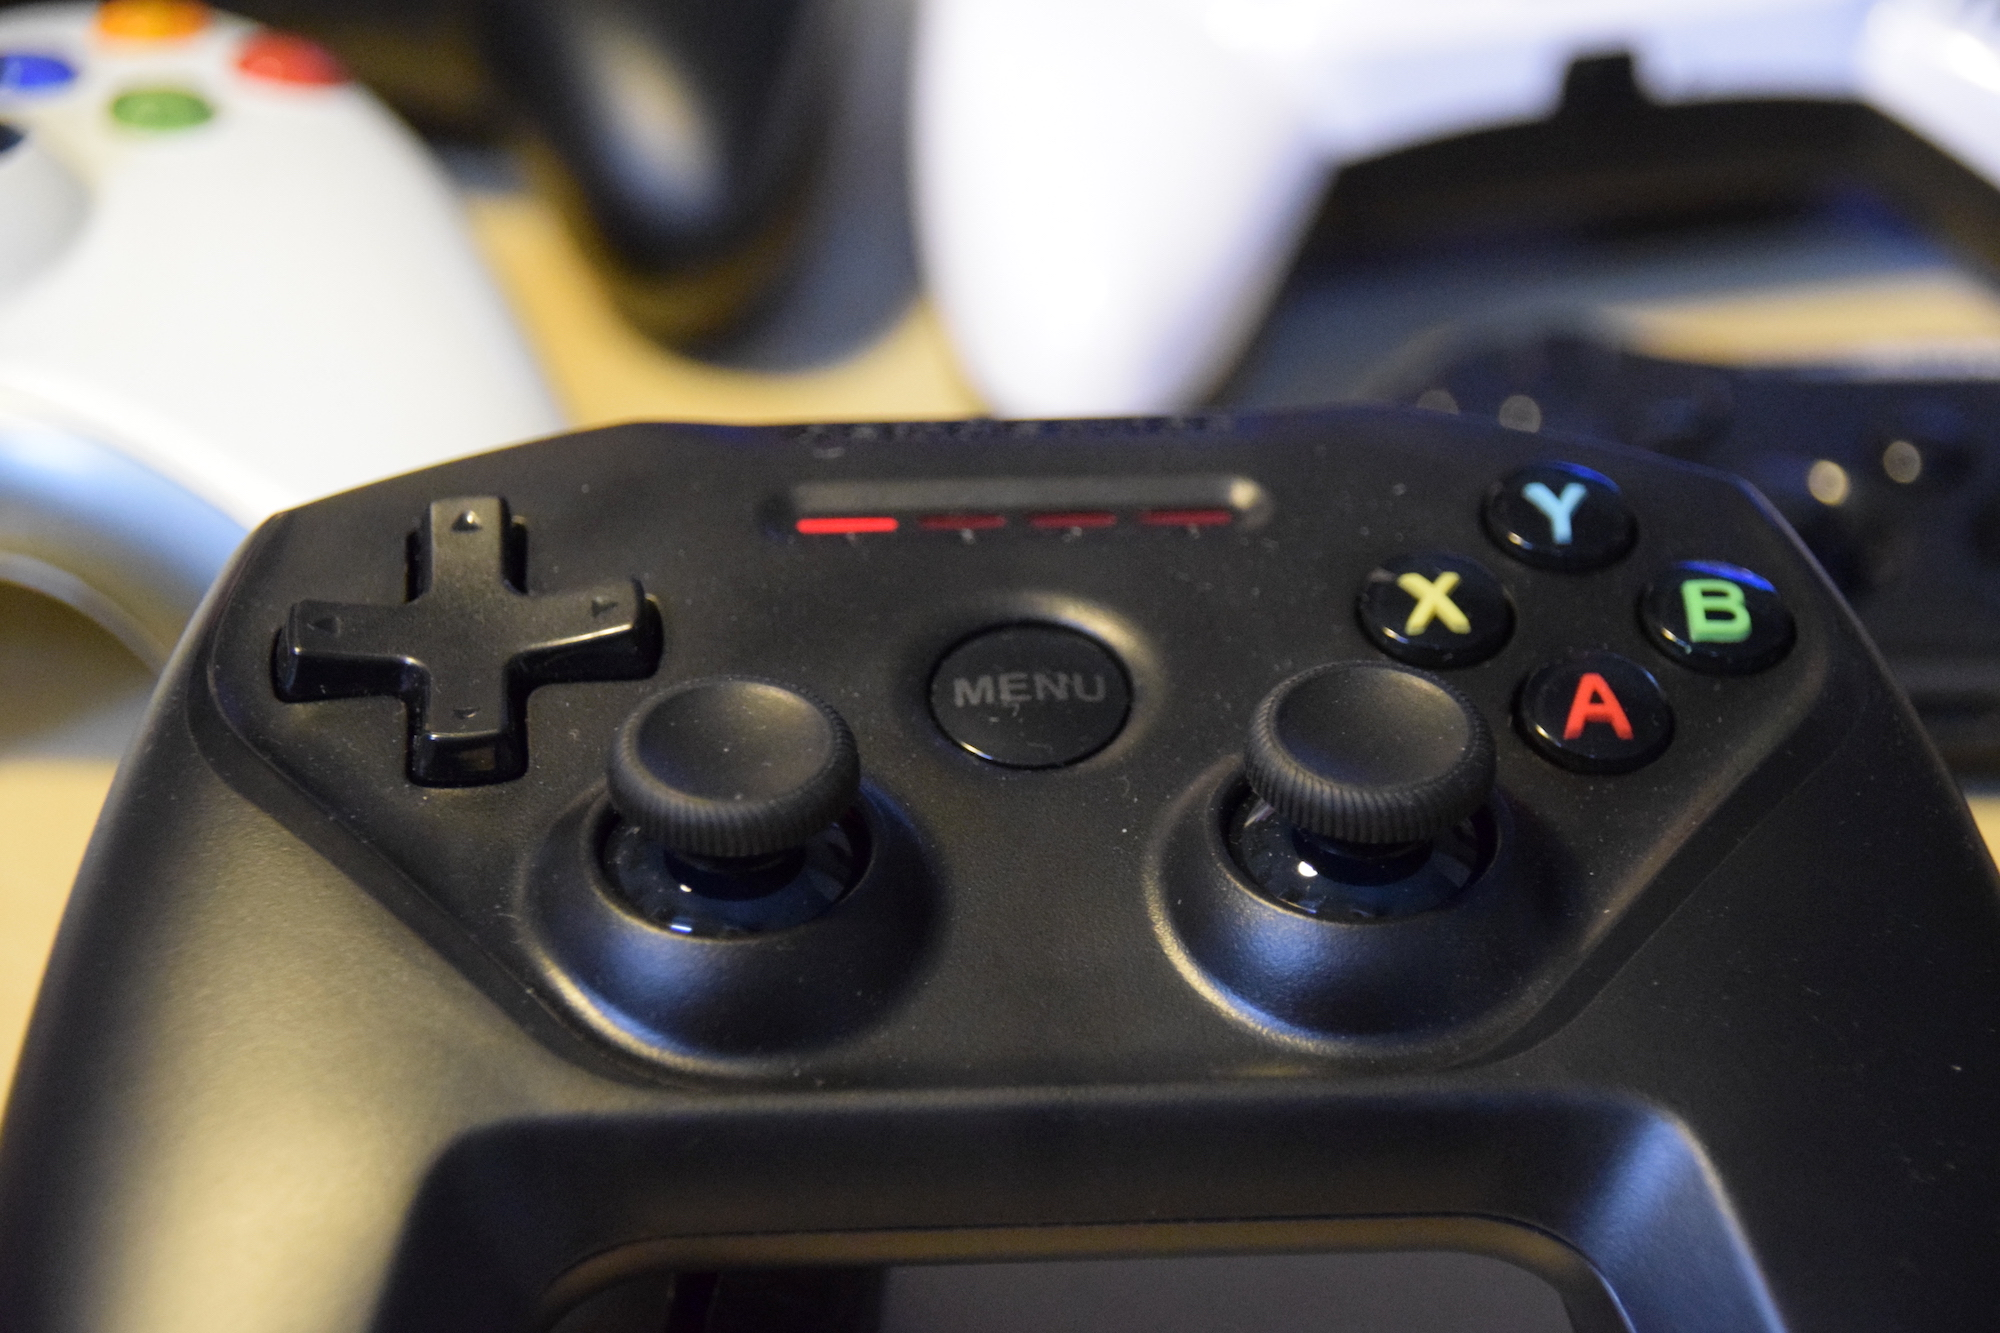 Steelseries Nimbus 03